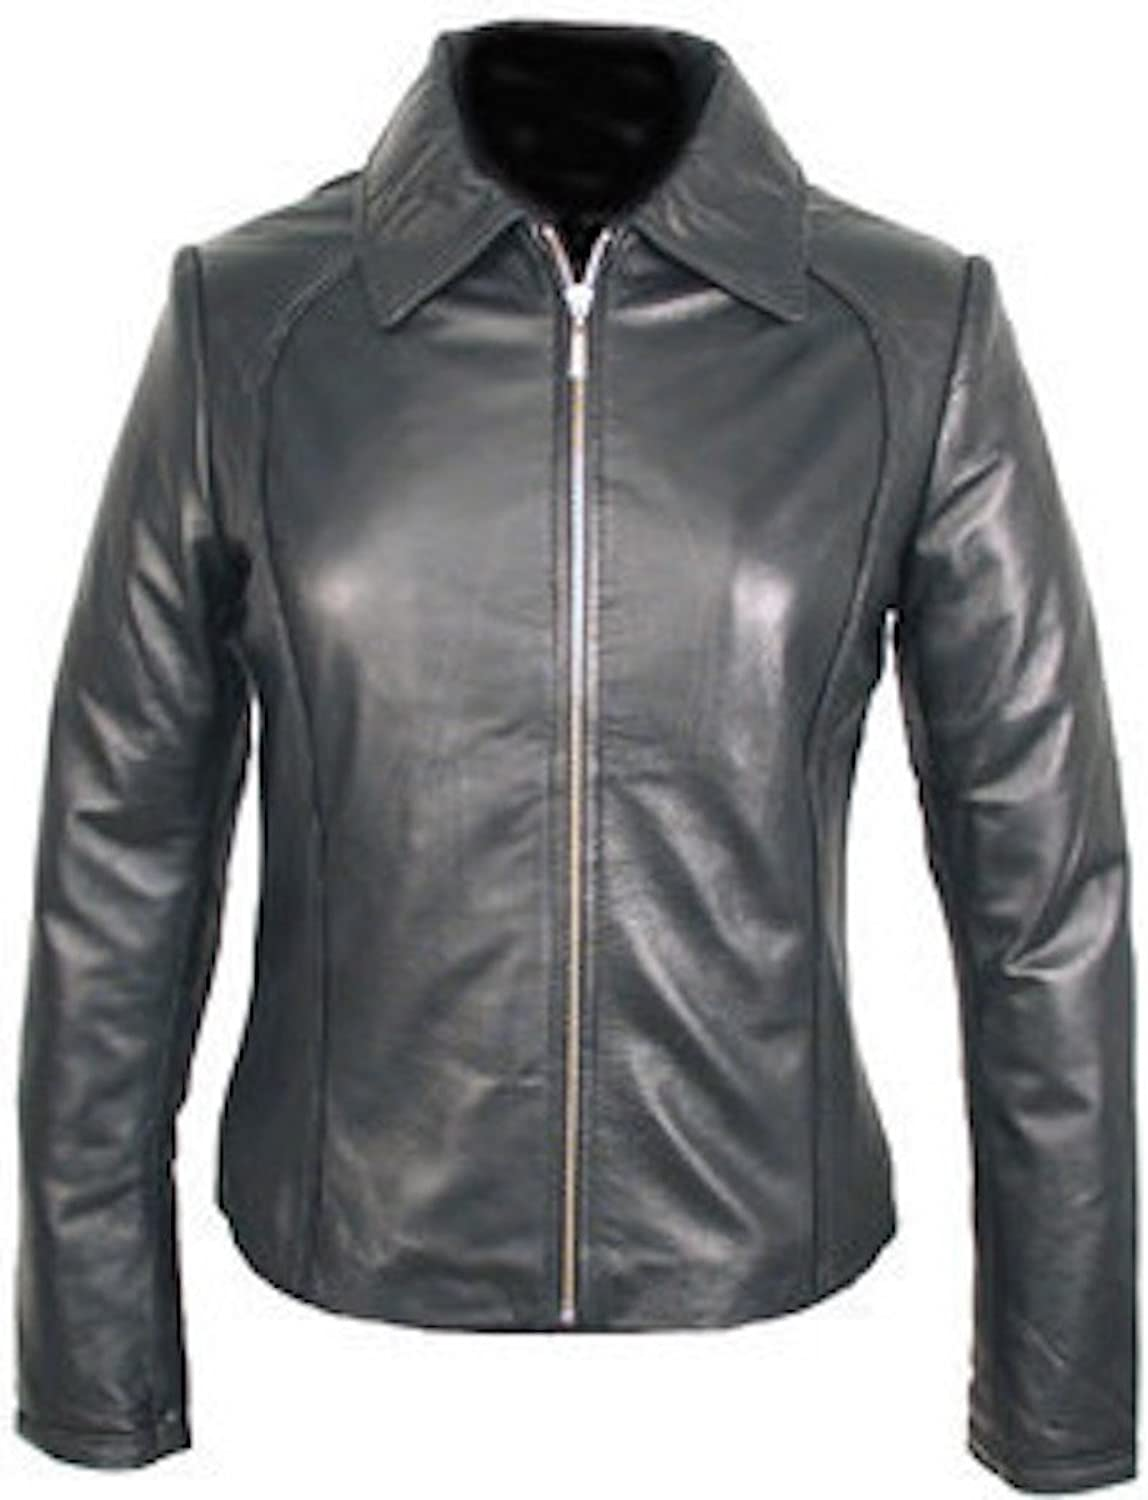 Fadcloset Montreal Womens Leather Jacket